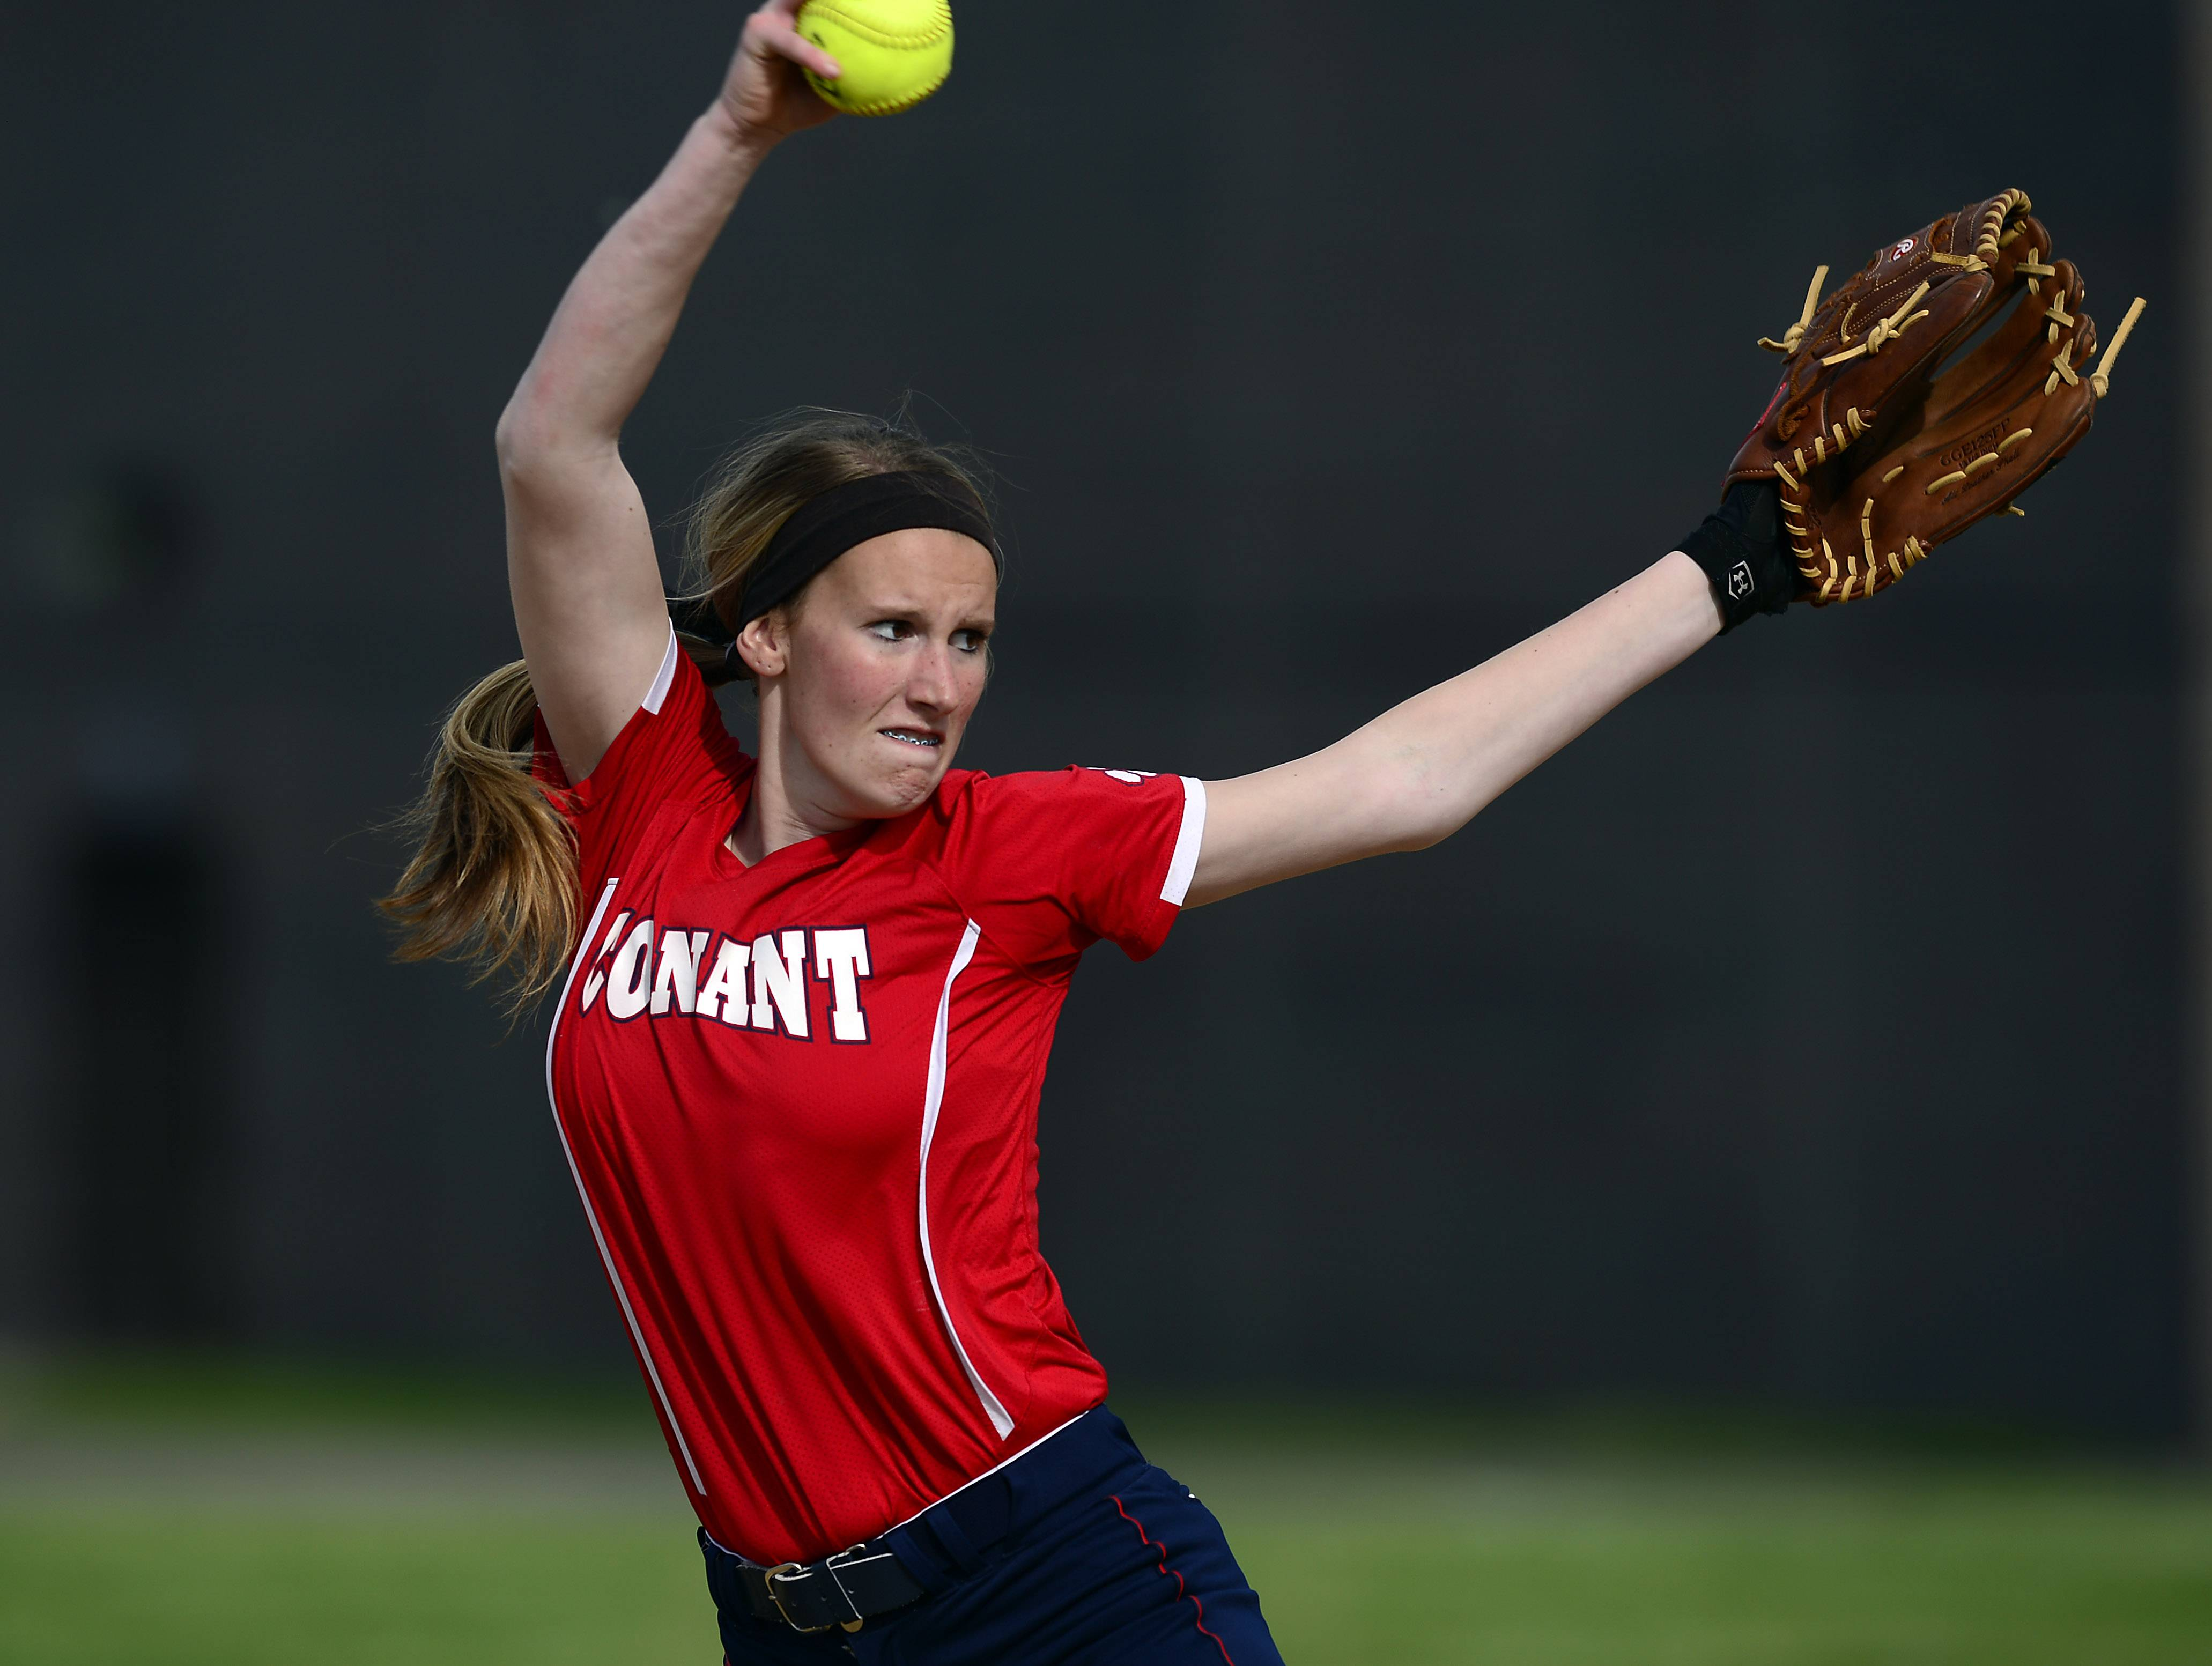 Conant pitcher Kali Schumacher fires with confidence early on in the Mid-Suburban League championship softball game against Buffalo Grove at Conant on Thursday.